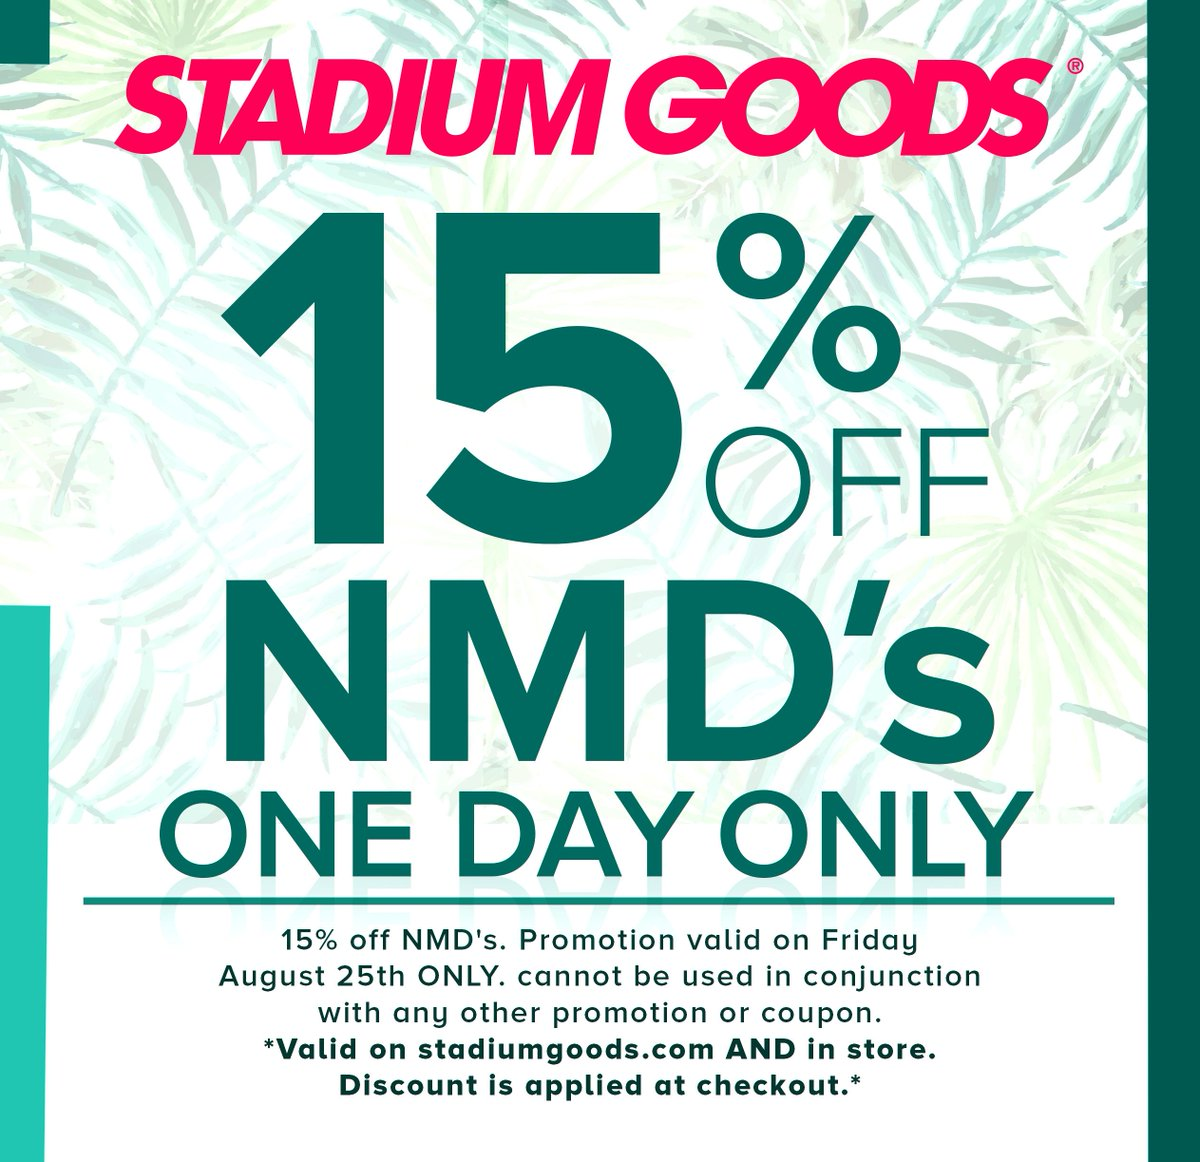 Active Stadium Goods Promo Codes & Deals for June 12222